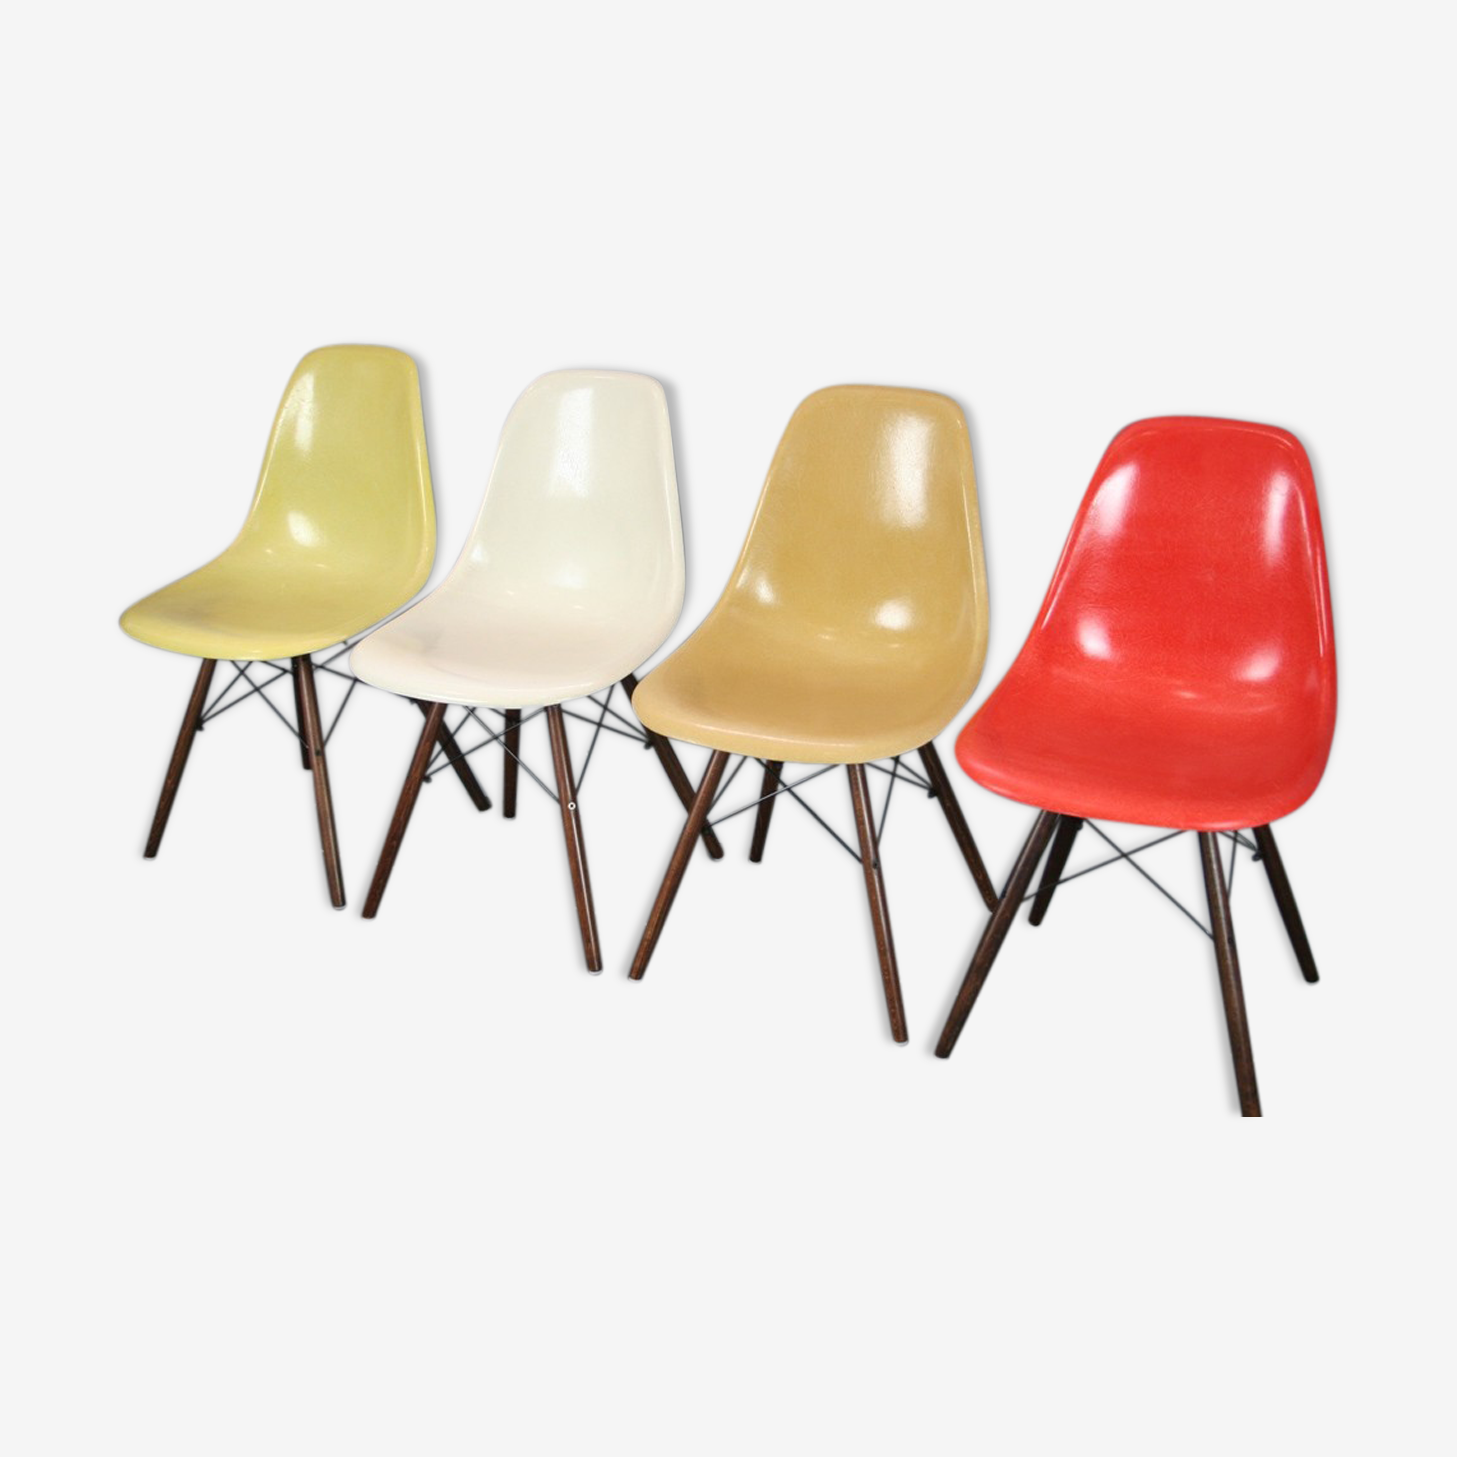 Lot 4 chairs DSW fiber walnut Eames Herman Miller vintage